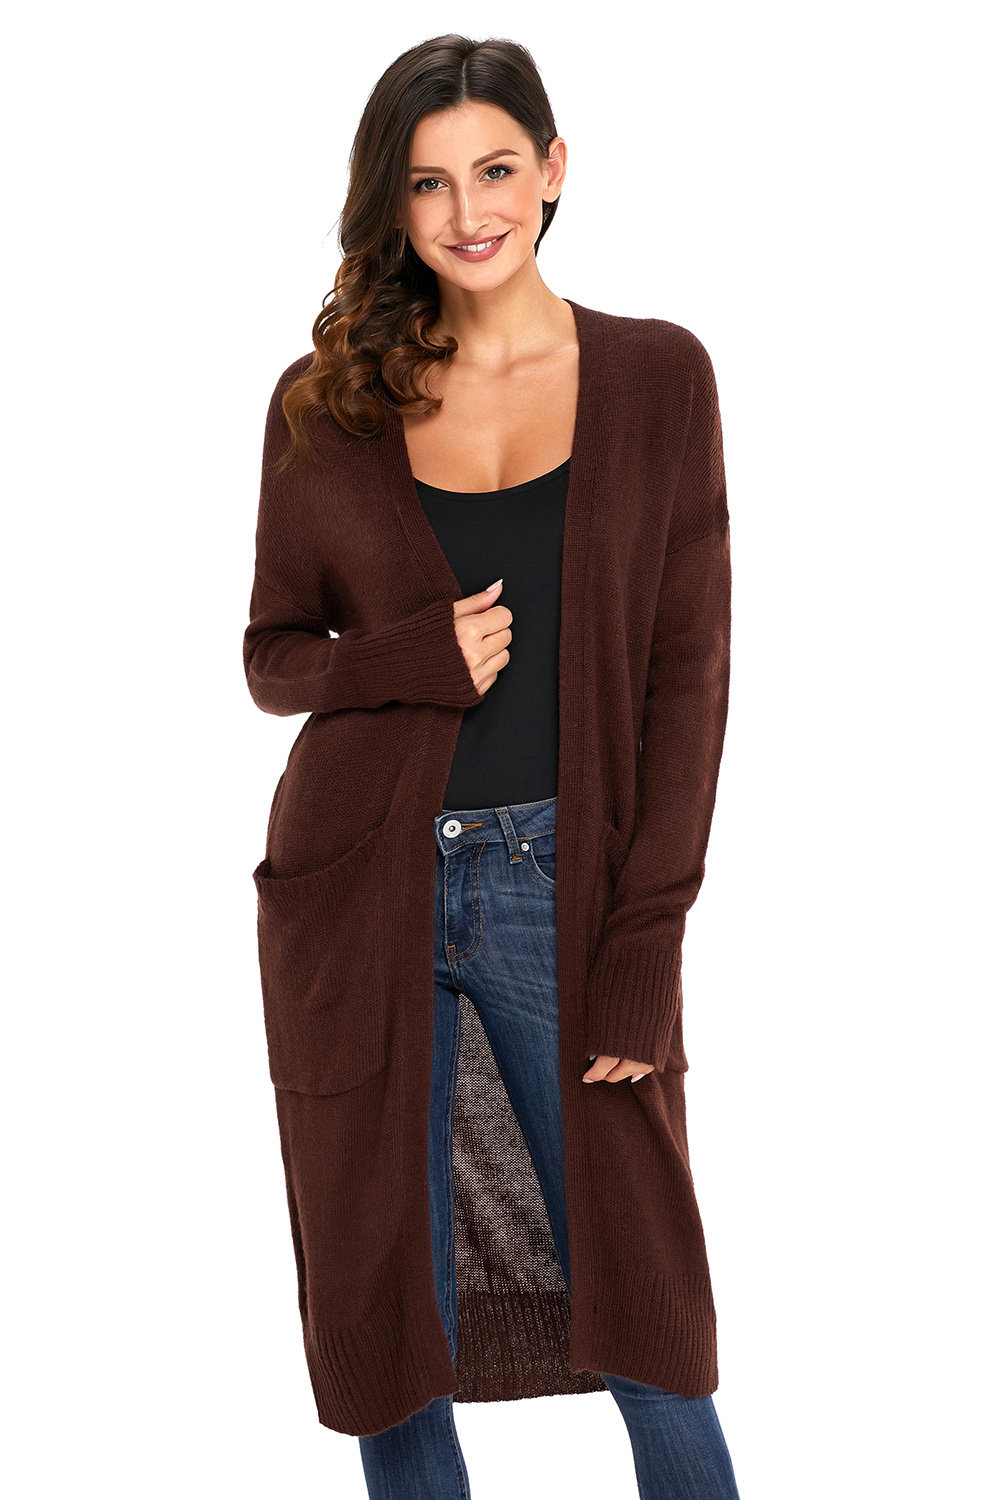 BROWN CARDIGANS -Cuddly favorite part for ladies